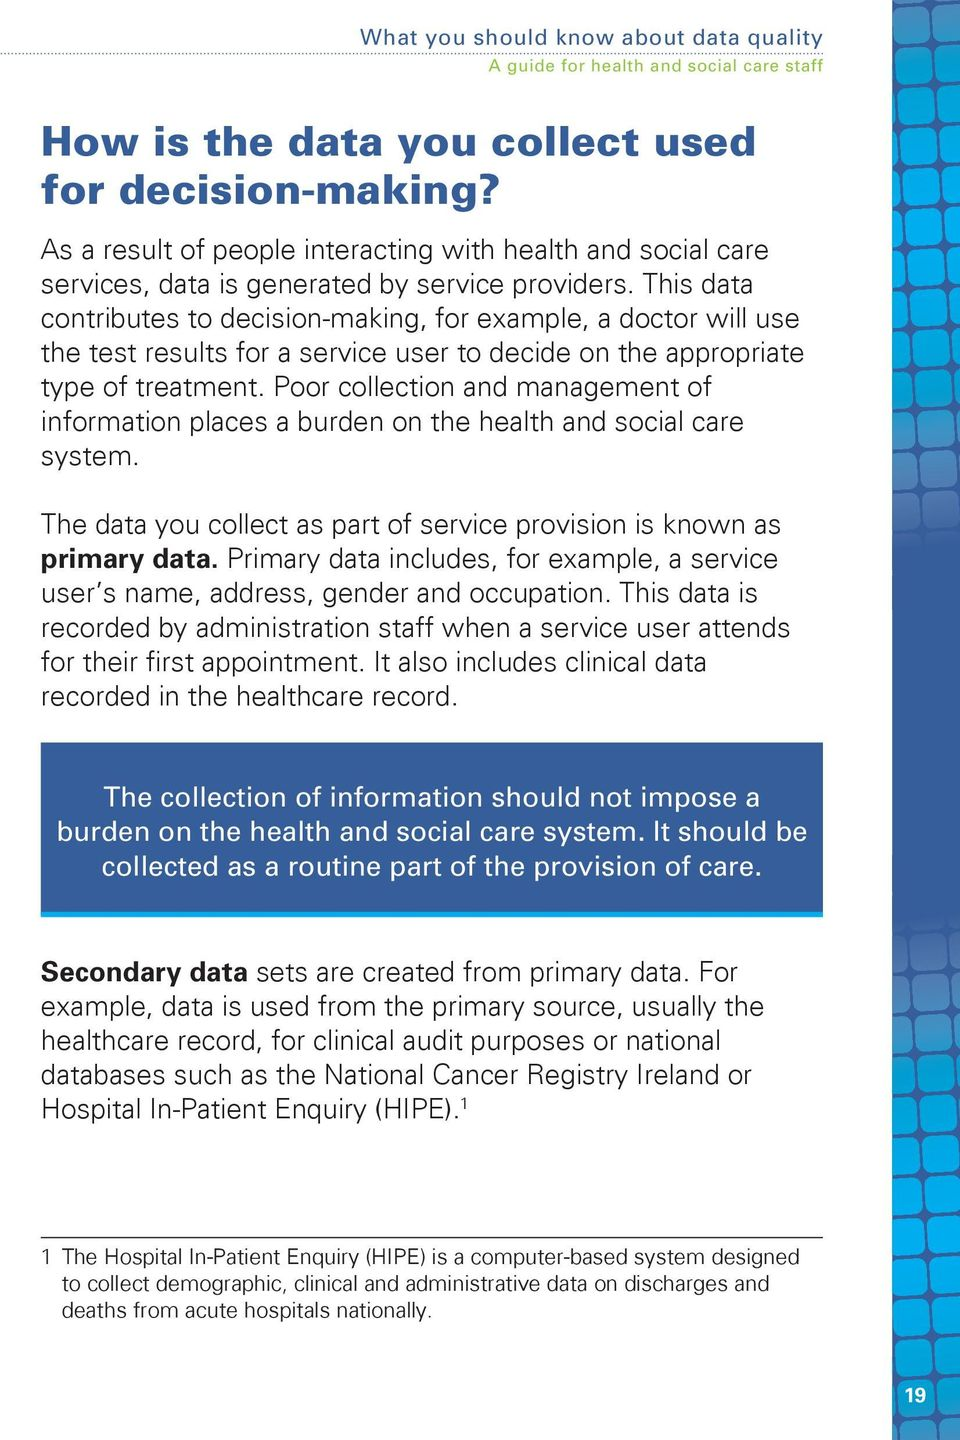 Poor collection and management of information places a burden on the health and social care system. The data you collect as part of service provision is known as primary data.